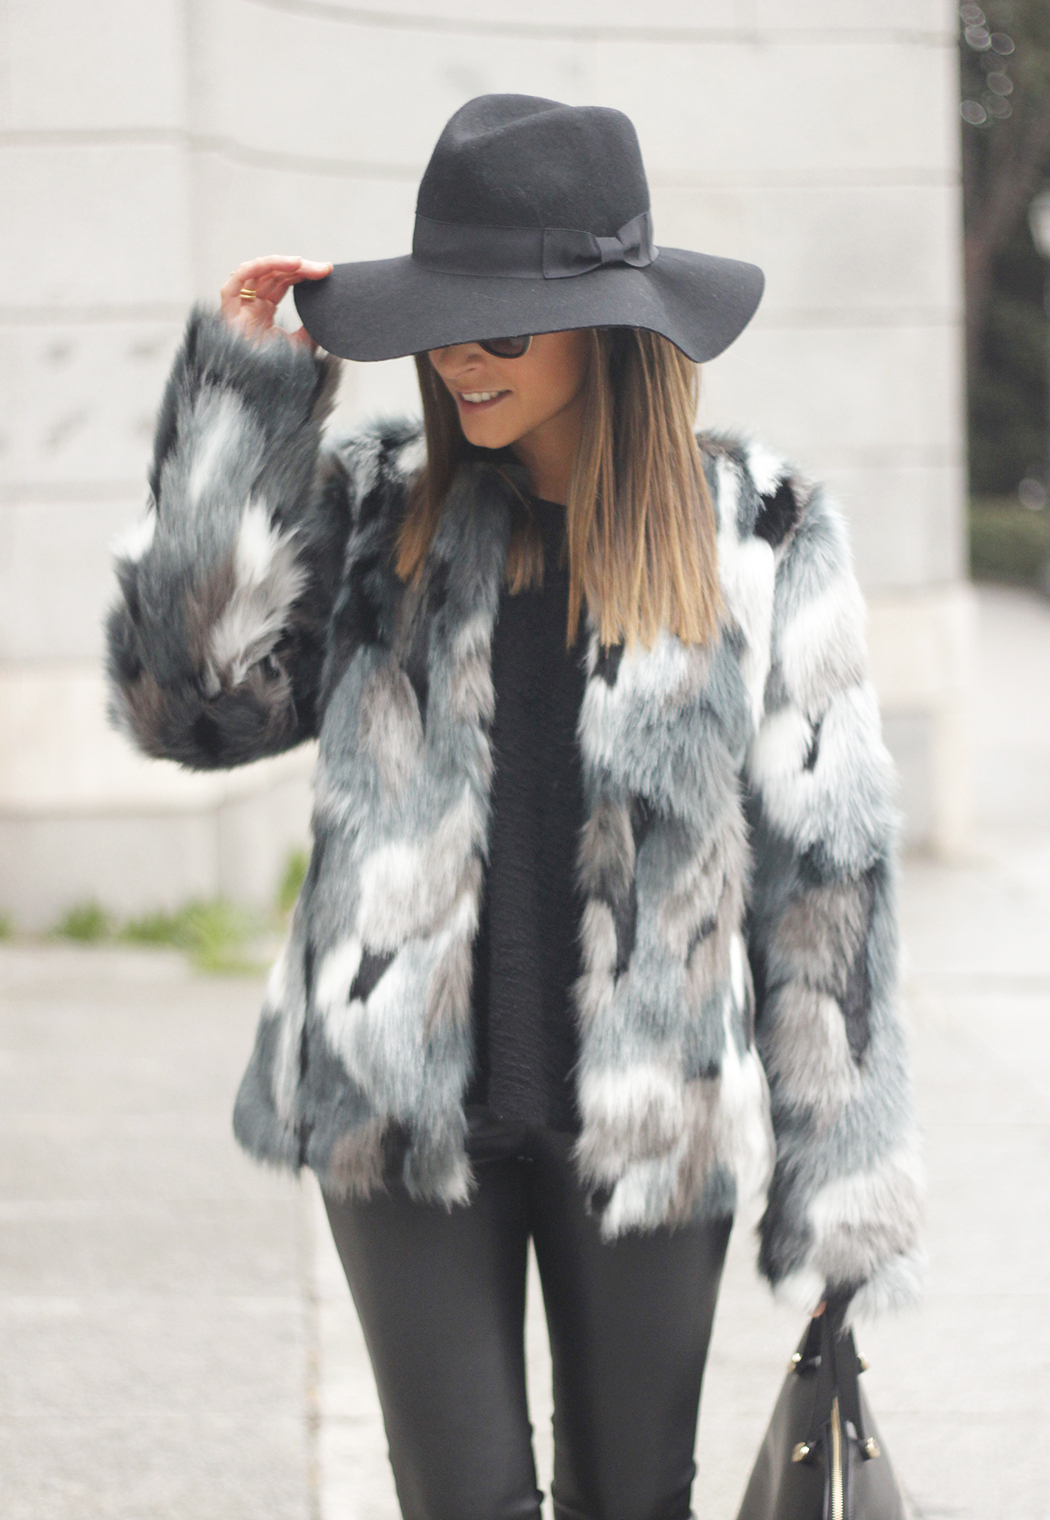 Faux fur coat leatherette pants booties black hat mango streetstyle fashion outfit21